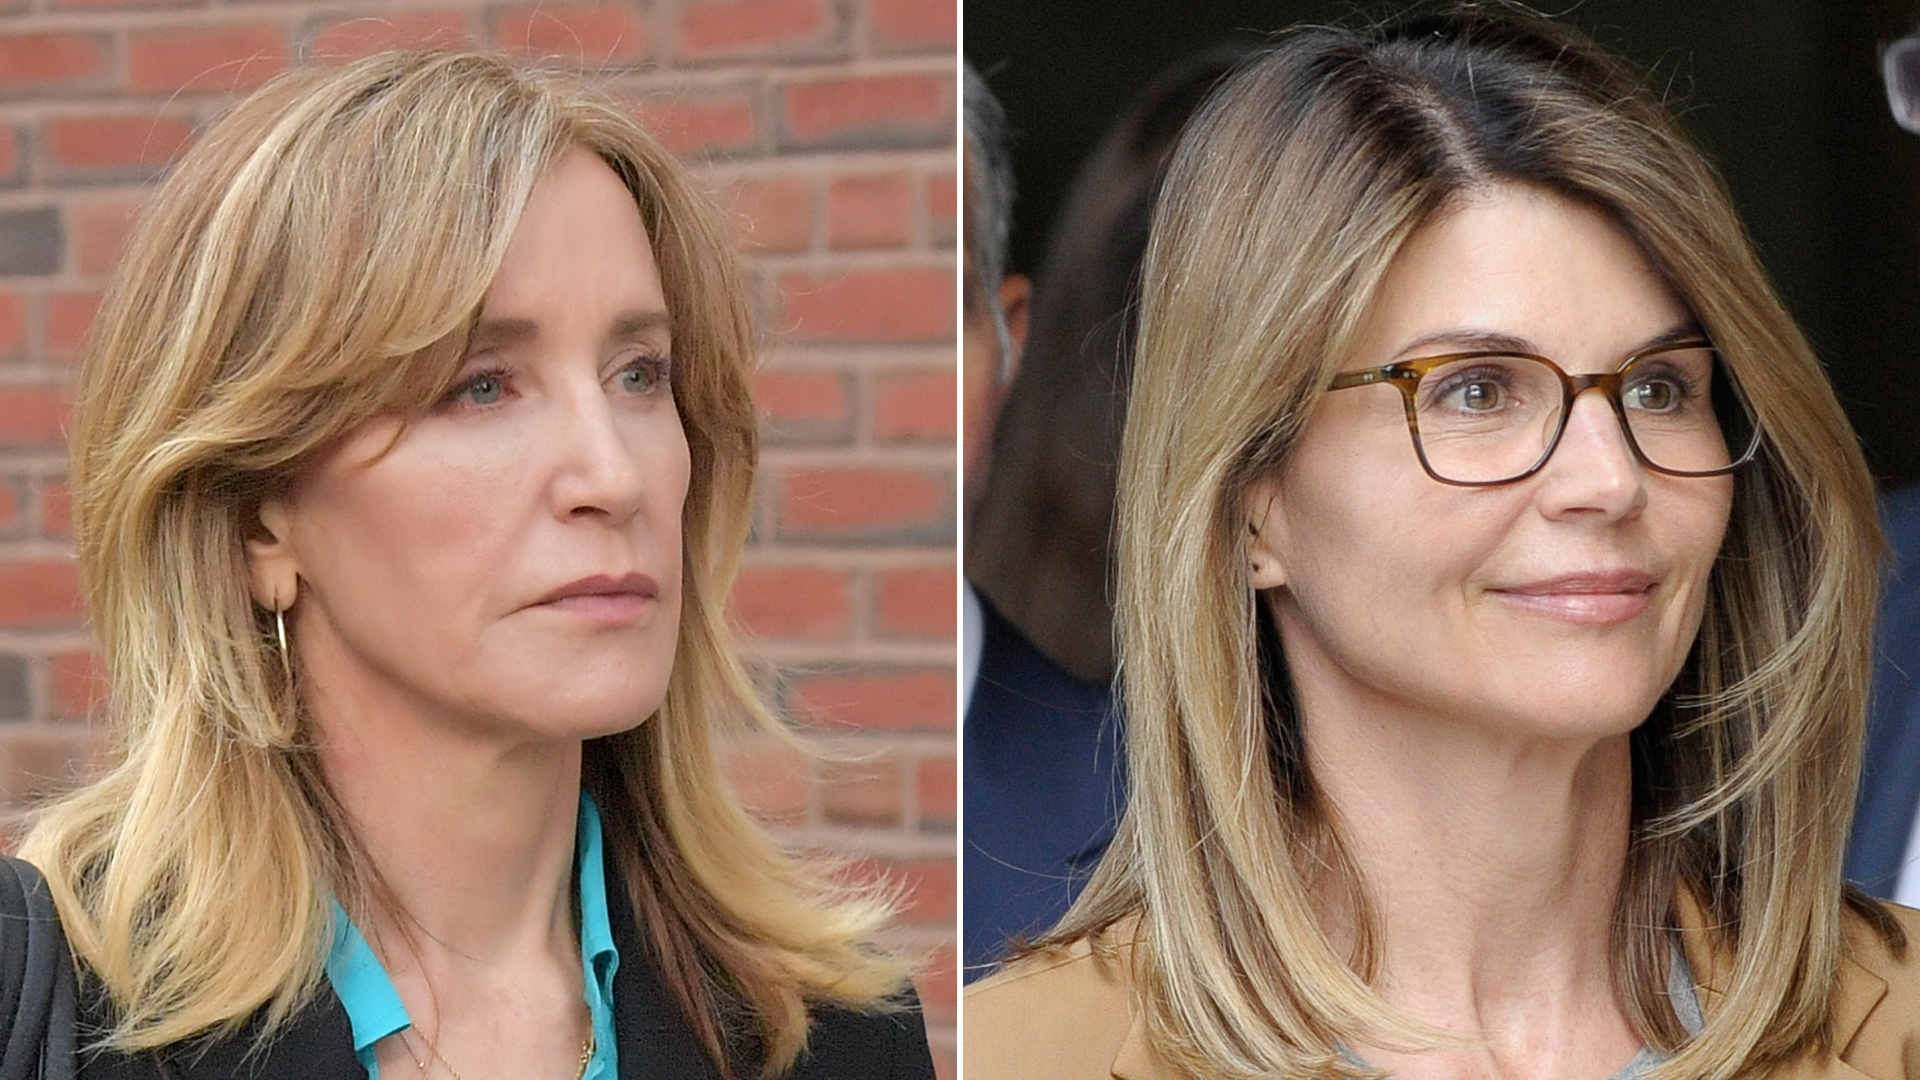 Felicity Huffman and Lori Loughlin appear at the John Joseph Moakley Courthouse in Boston on April 3, 2019. (Credit: Paul Marotta/JOSEPH PREZIOSO/AFP/Getty Images)